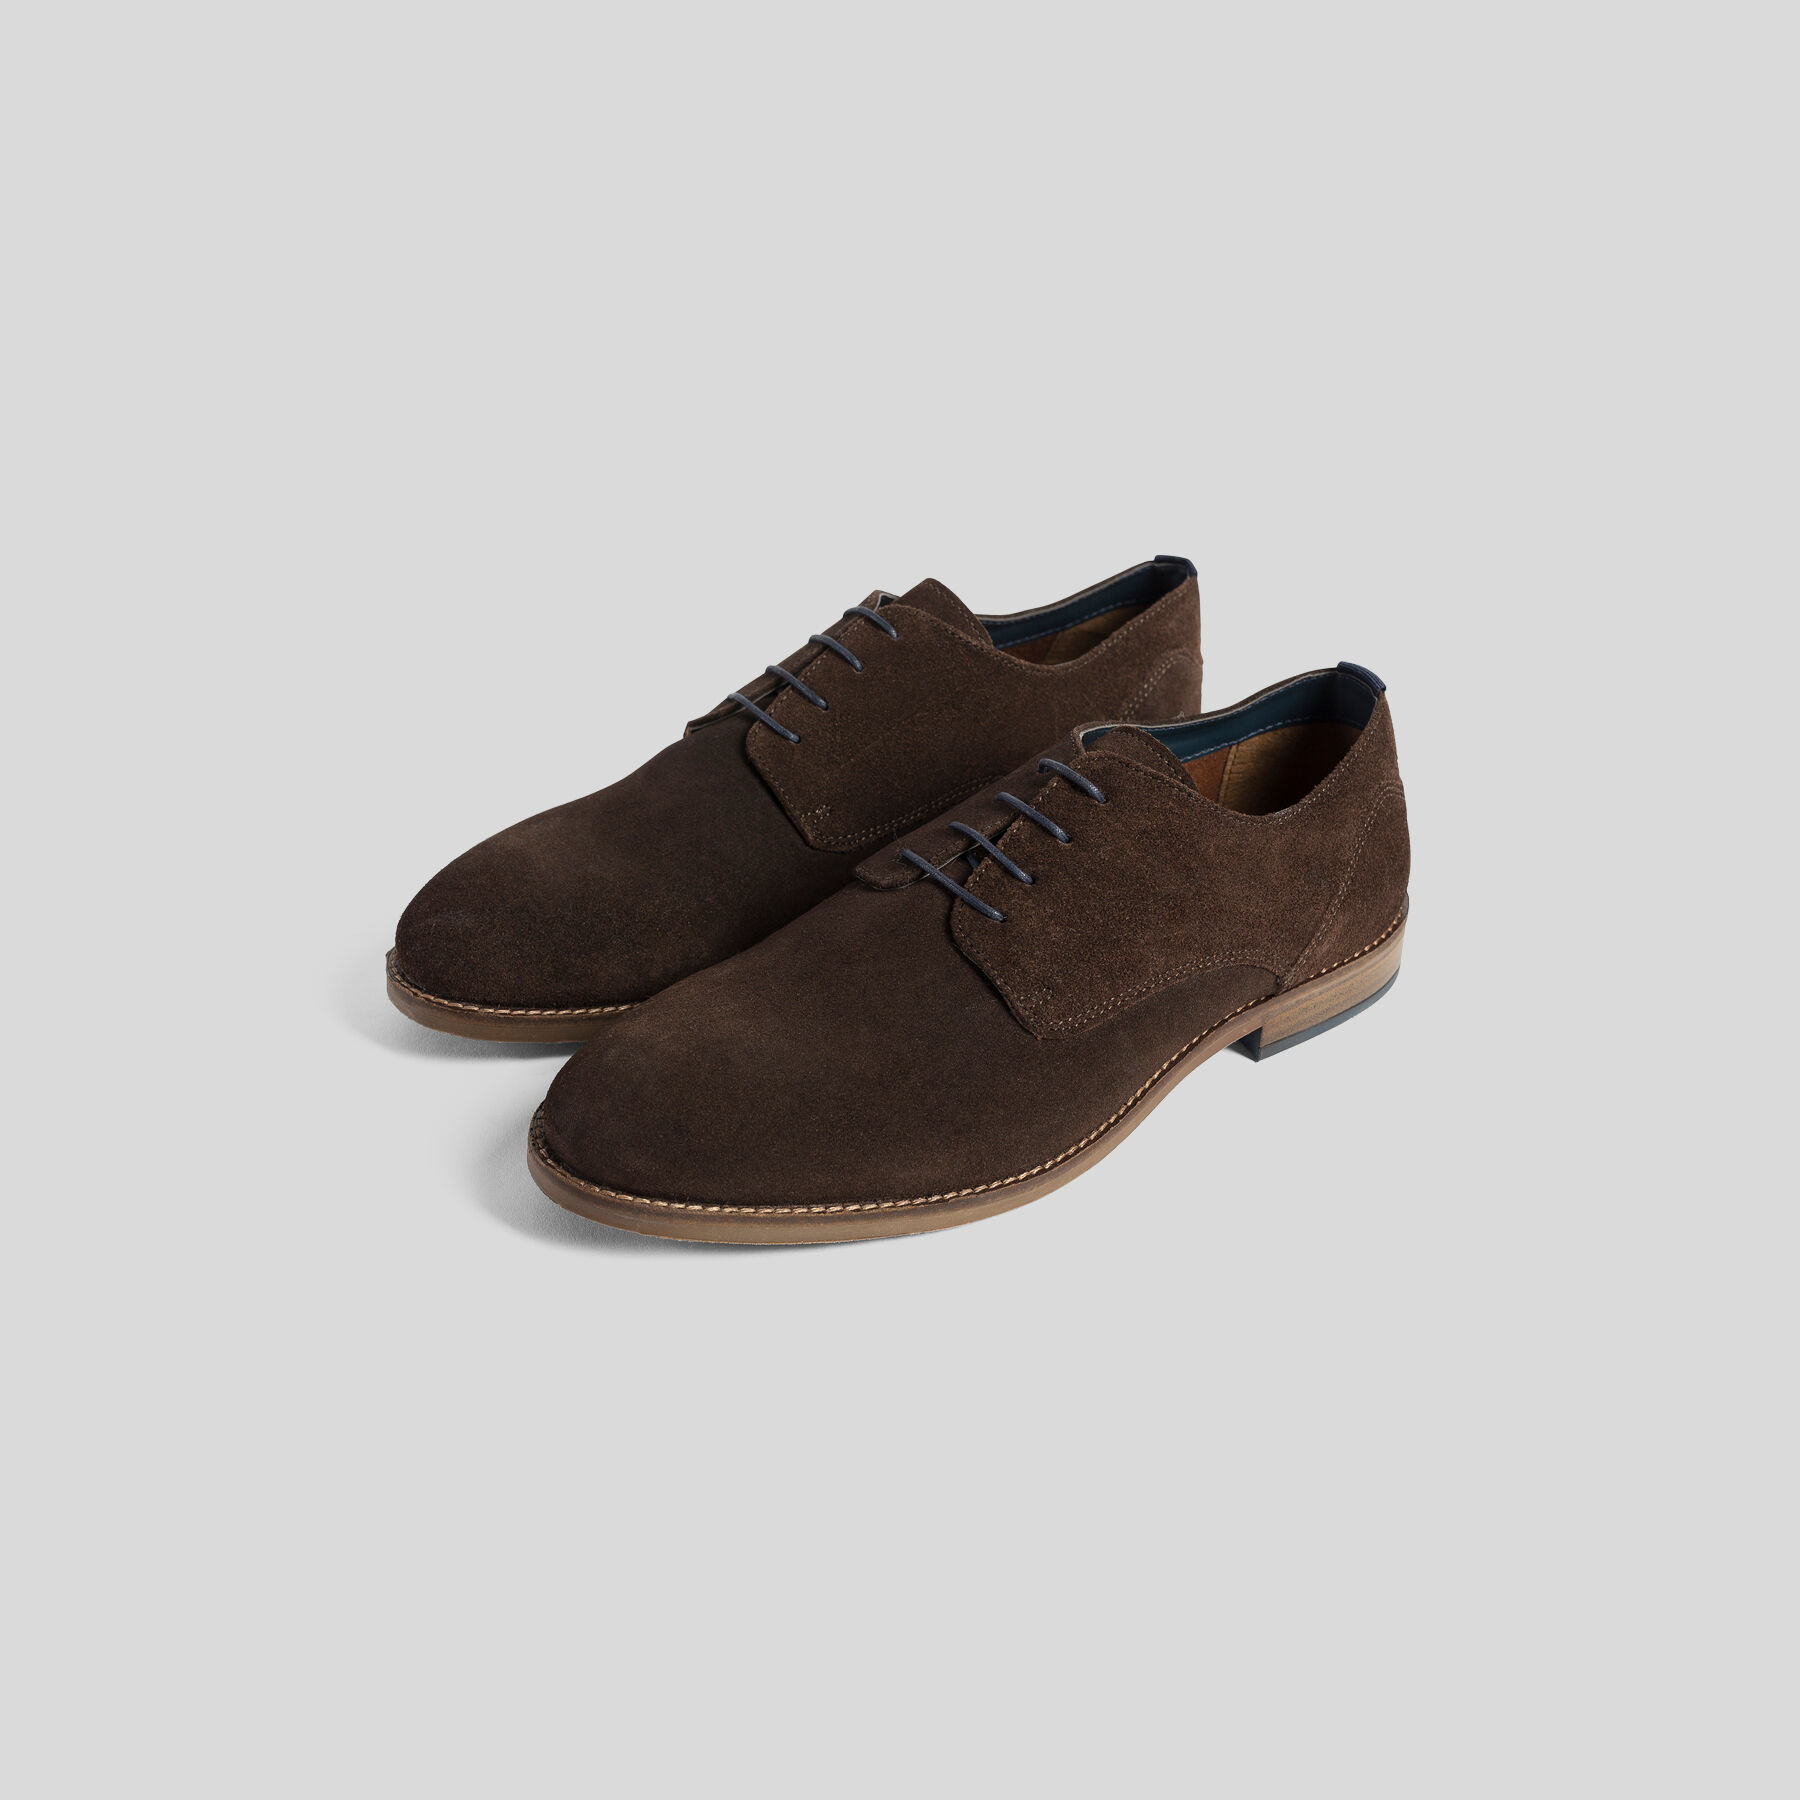 Boots Homme Jules Cuir Chaussures Homme Chaussure ZPnSwaW